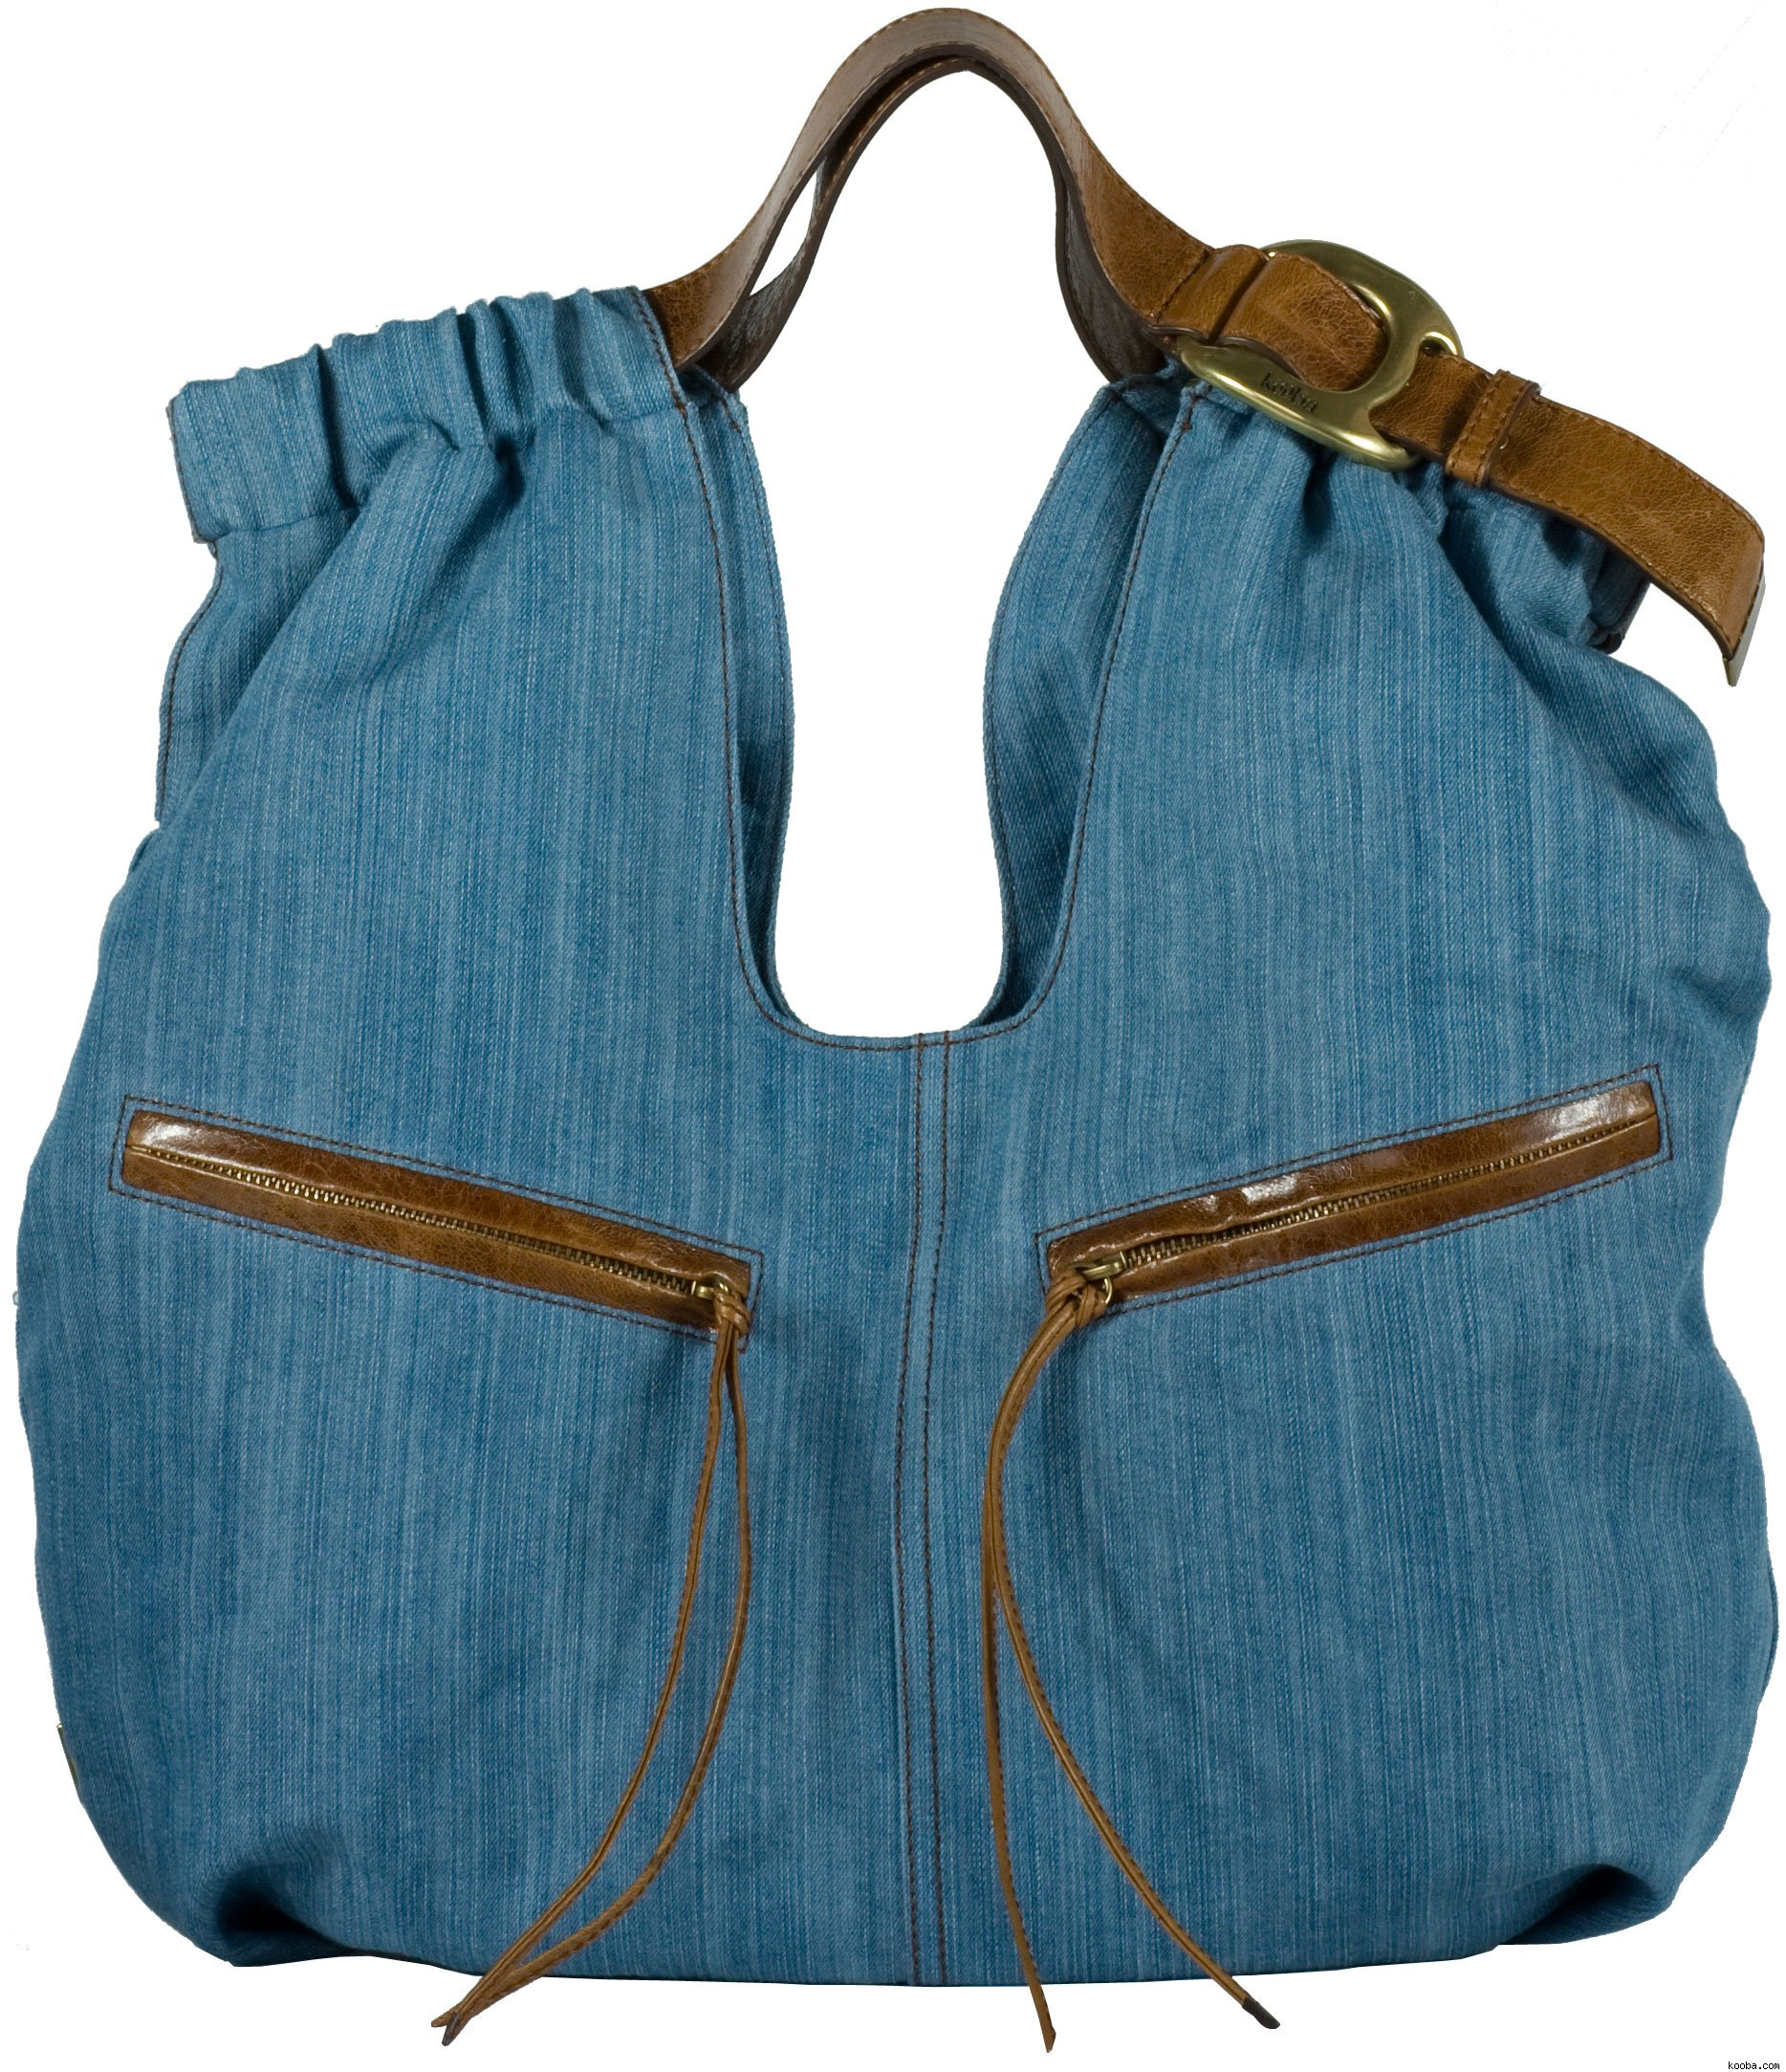 Kooba - Lana Denim Tote :  handbag tote bag bag denim tote